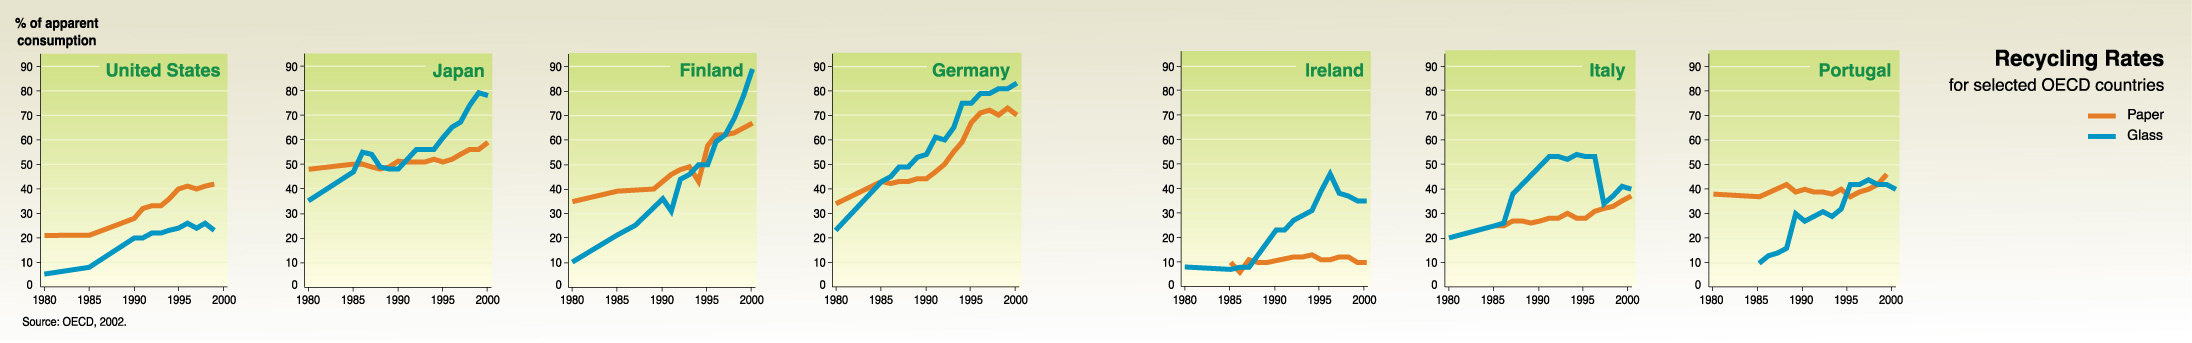 Recycling rates for selected OECD countries | GRID-Arendal